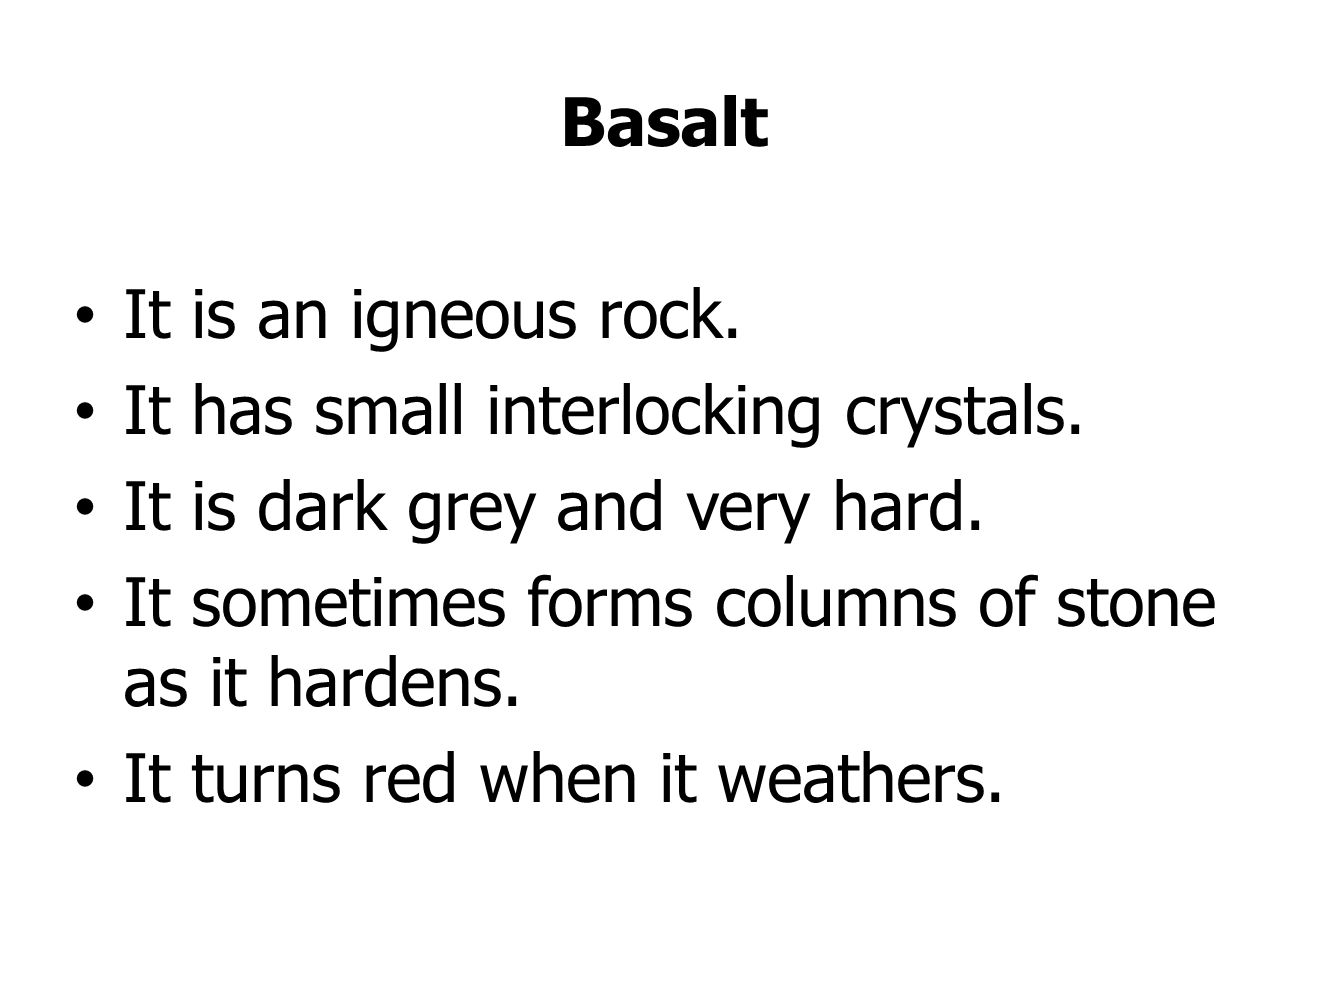 Basalt It is an igneous rock. It has small interlocking crystals. It is dark grey and very hard. It sometimes forms columns of stone as it hardens. It